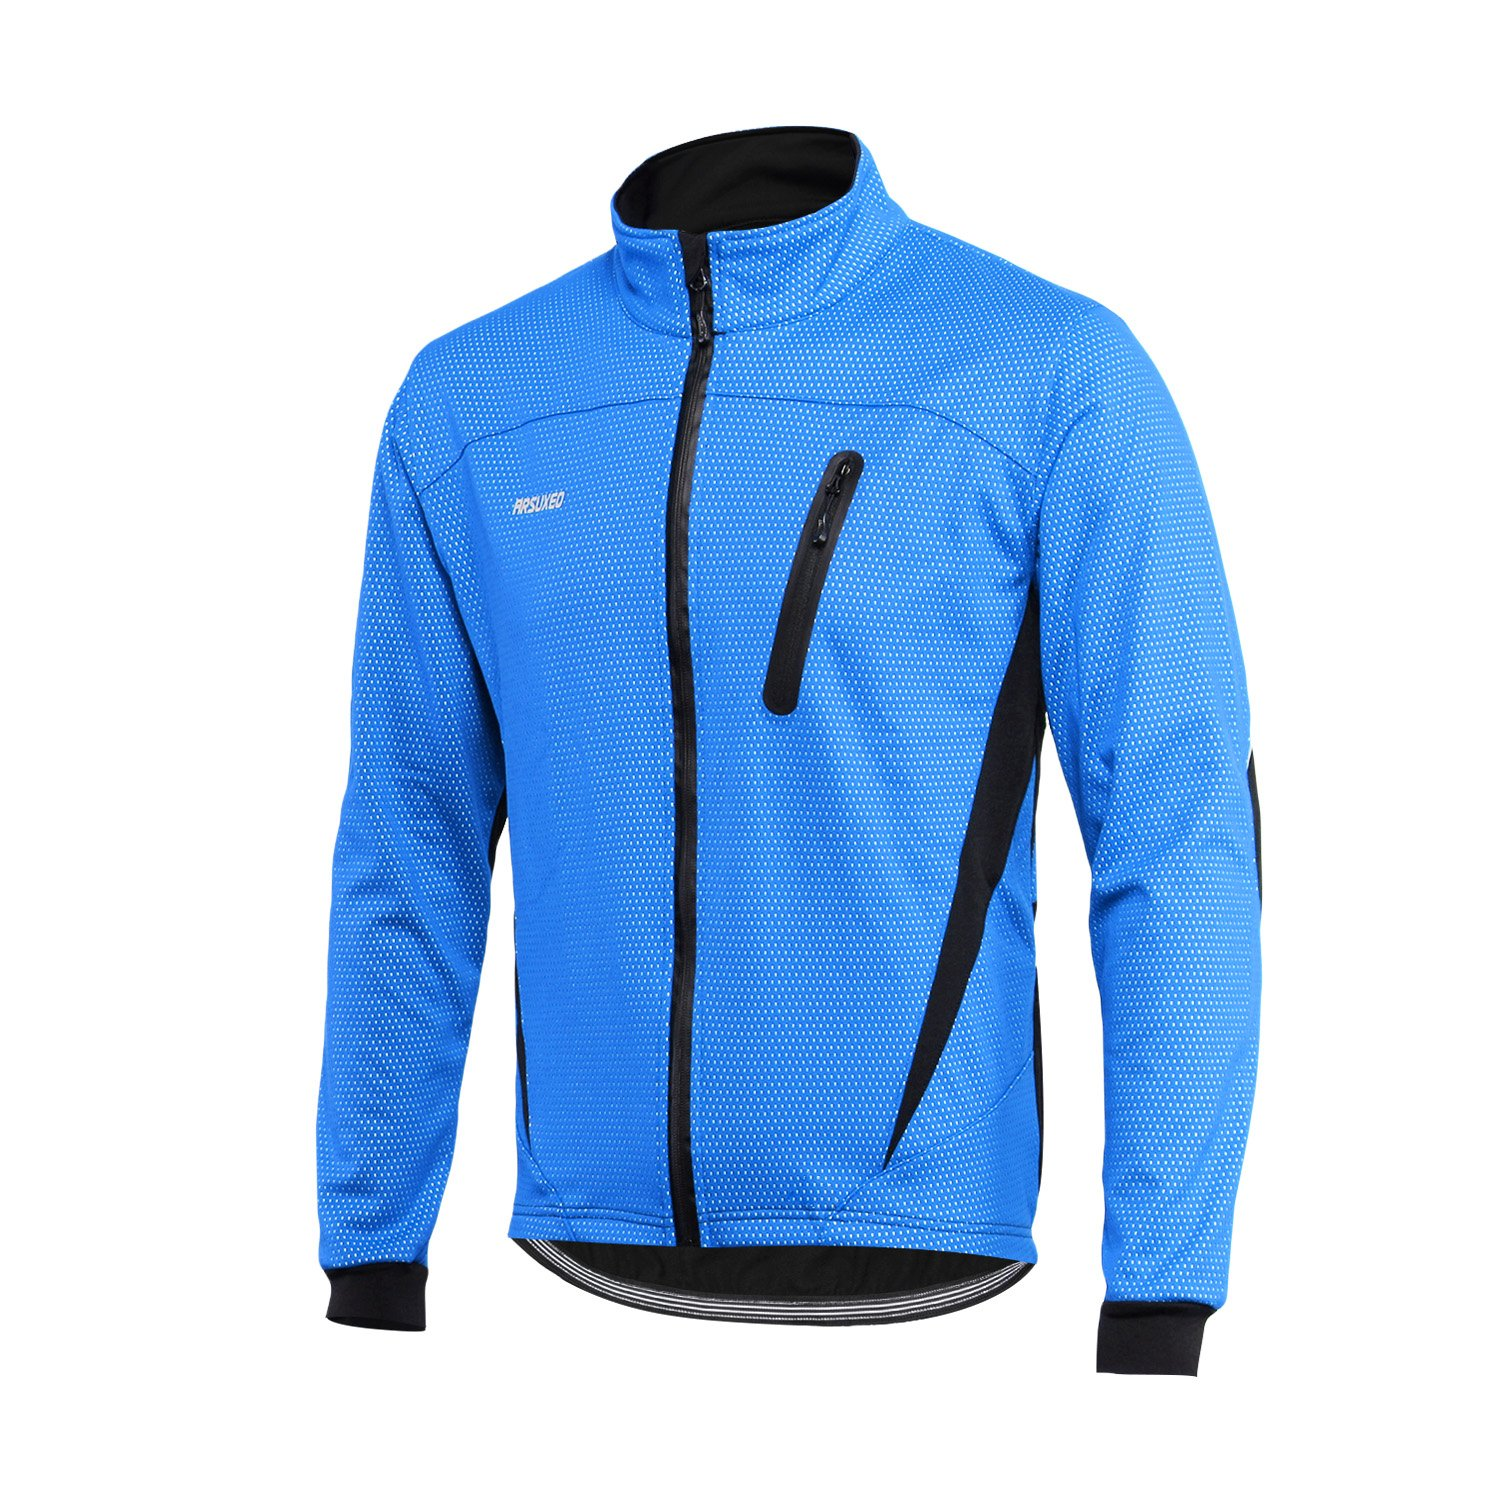 ARSUXEO Winter Warm UP Thermal Fleece Cycling Jacket Windproof Waterproof Breathalbe 16H Blue Size Large by ARSUXEO